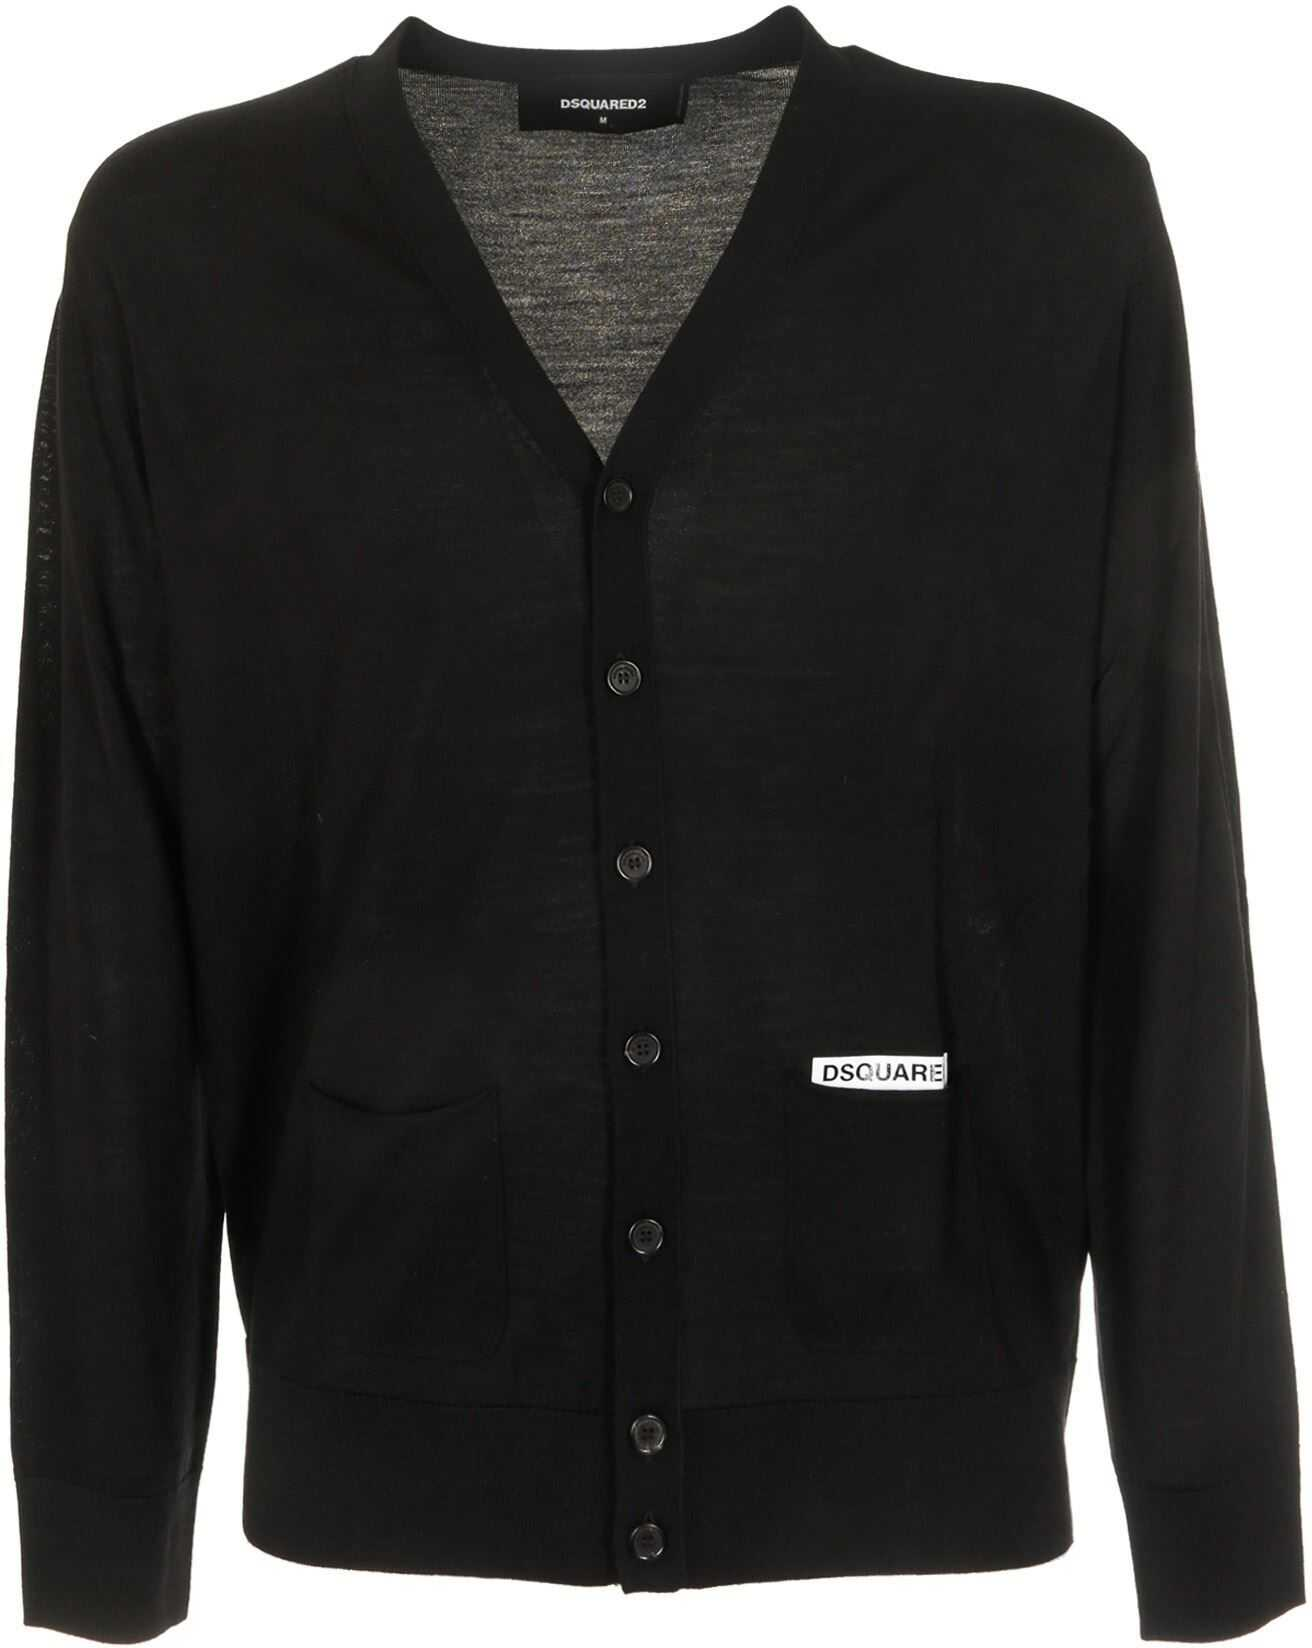 DSQUARED2 Cardigan In Black With Pockets Black imagine